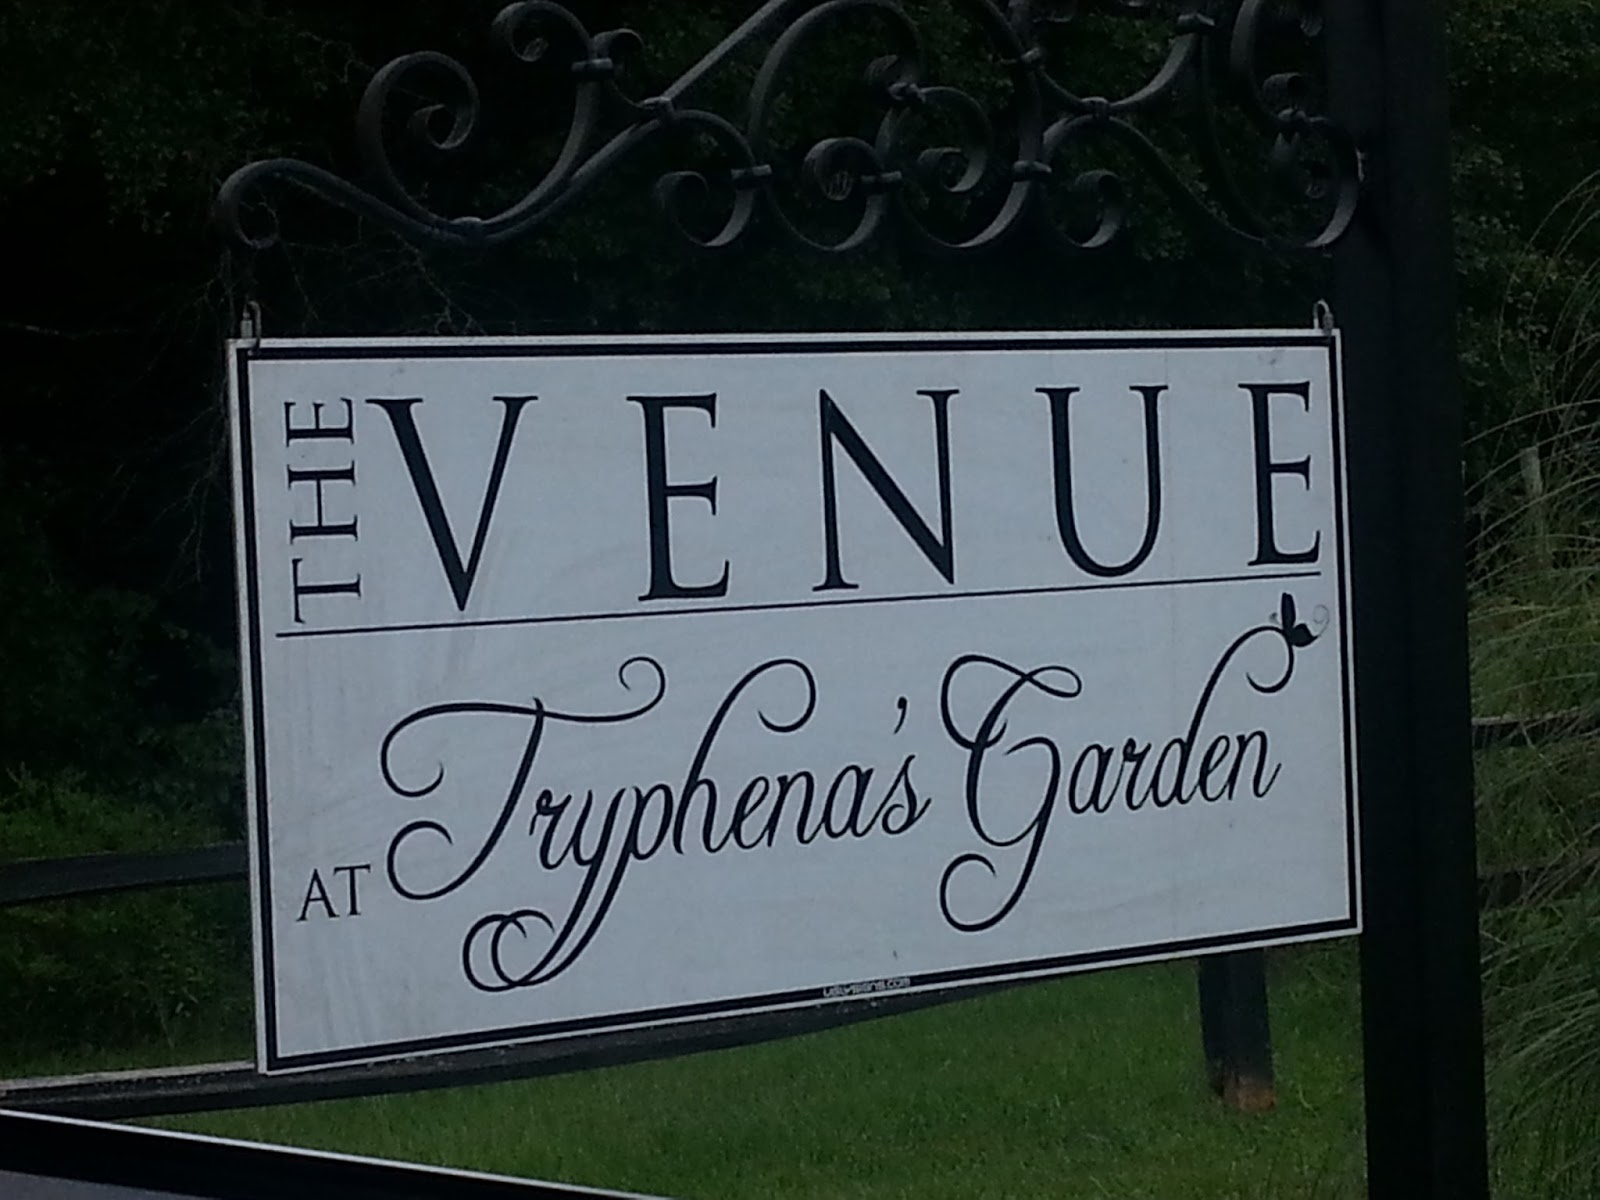 welcome to the venue at tryphanas gardens